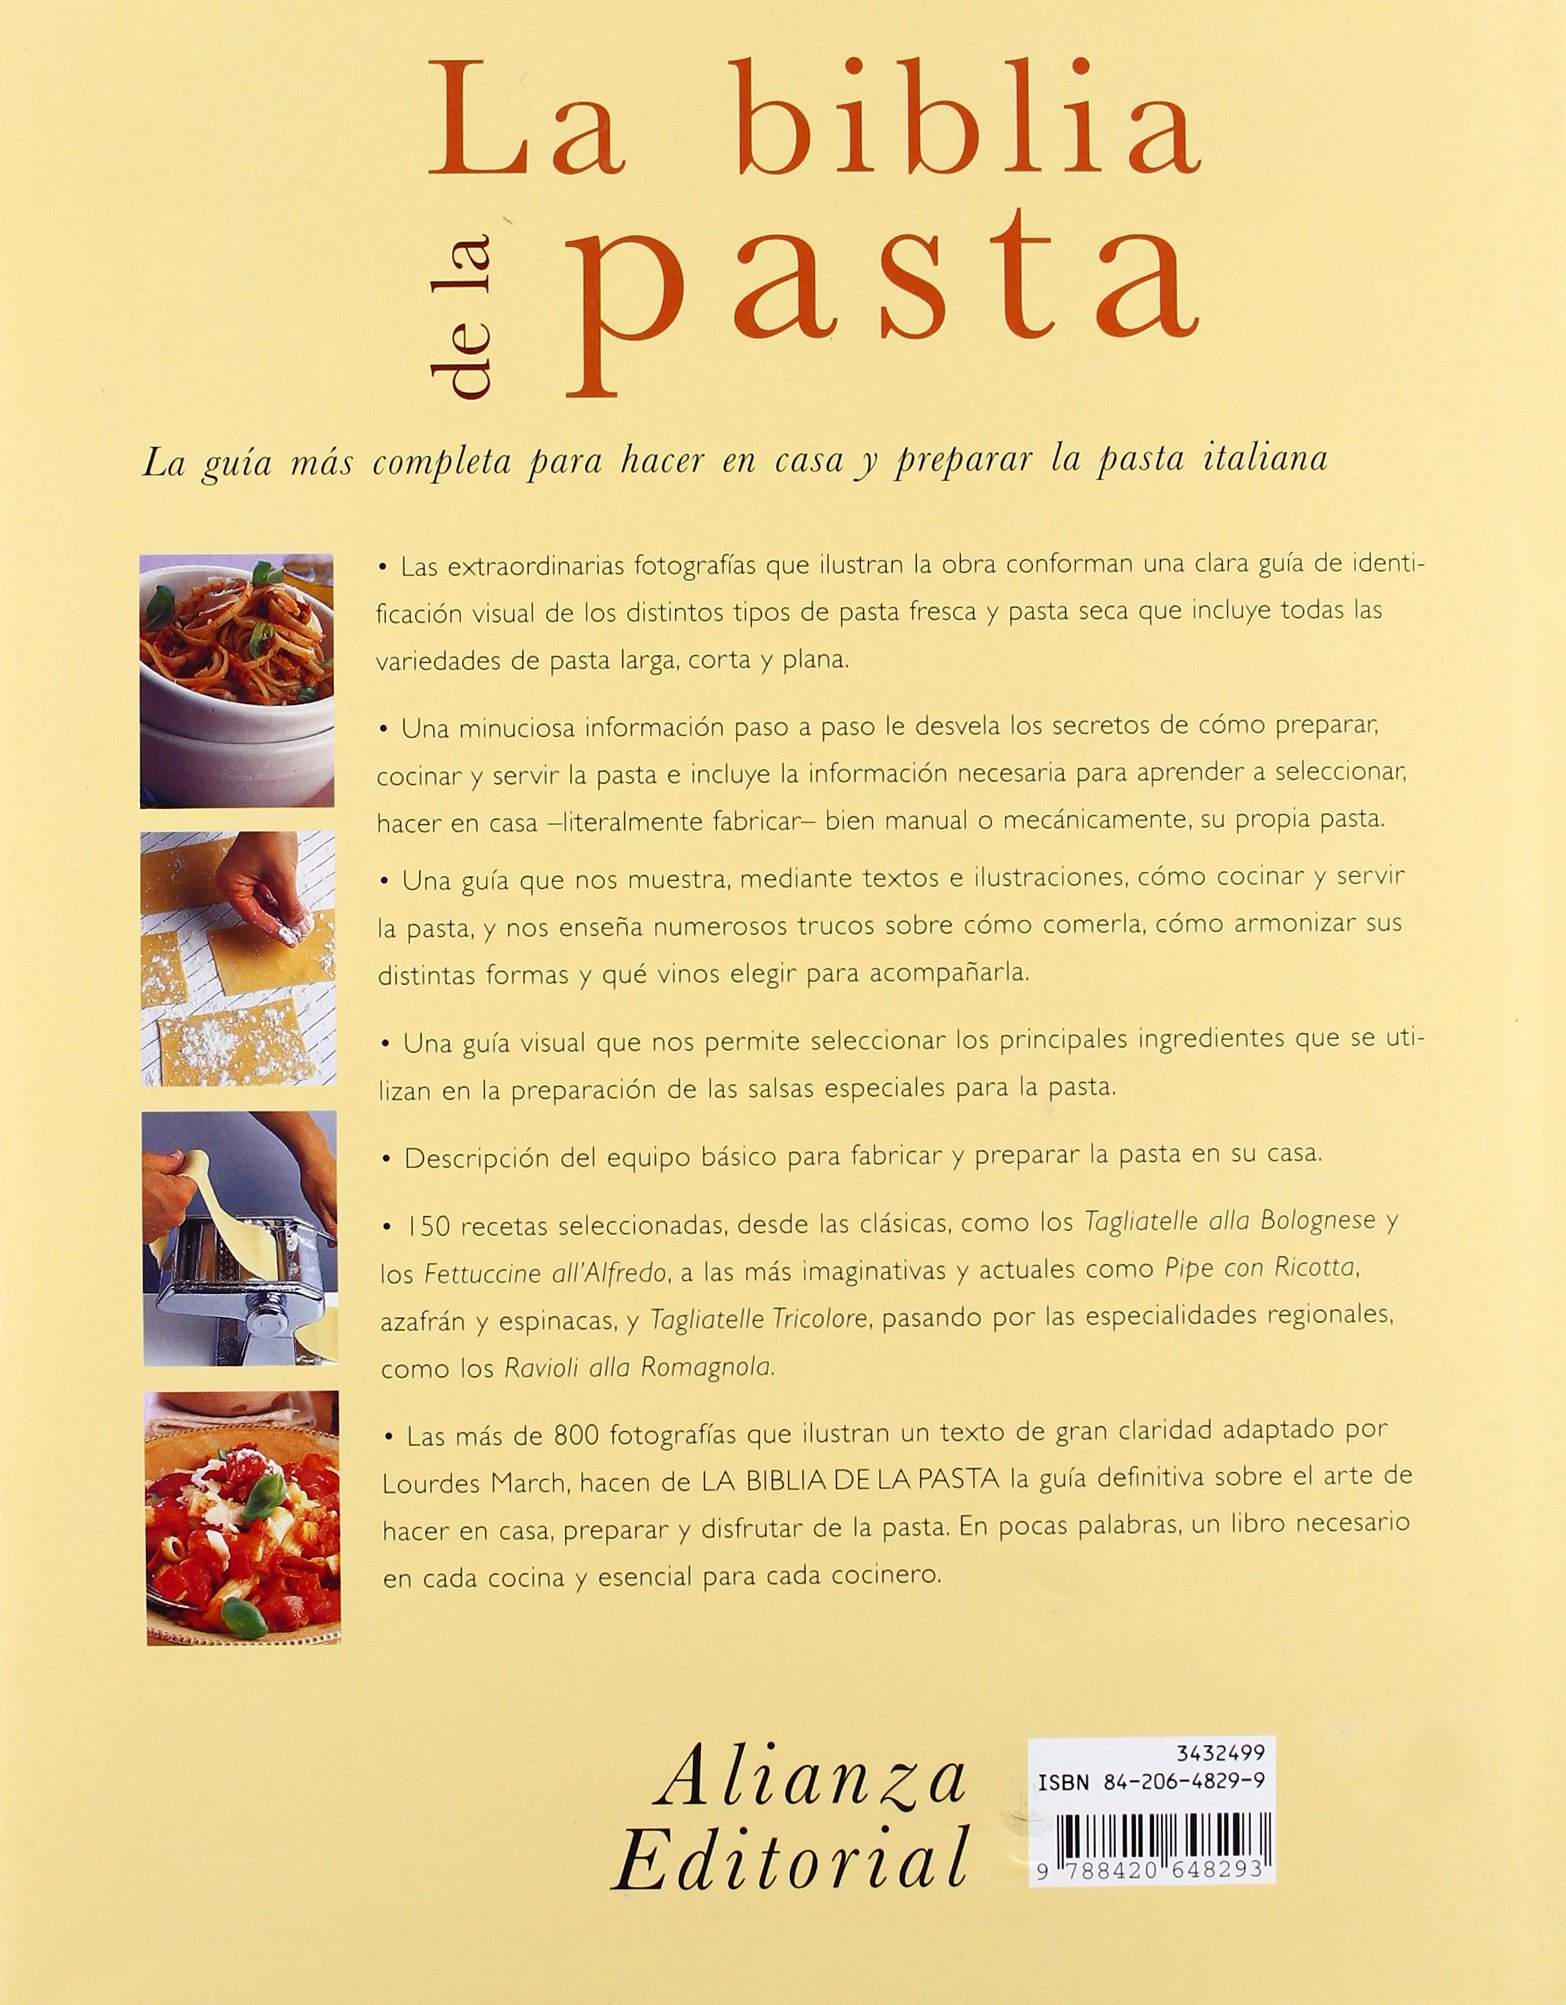 La biblia de la pasta / The Pasta Bible (Spanish Edition): Jeni Wright: 9788420648293: Amazon.com: Books